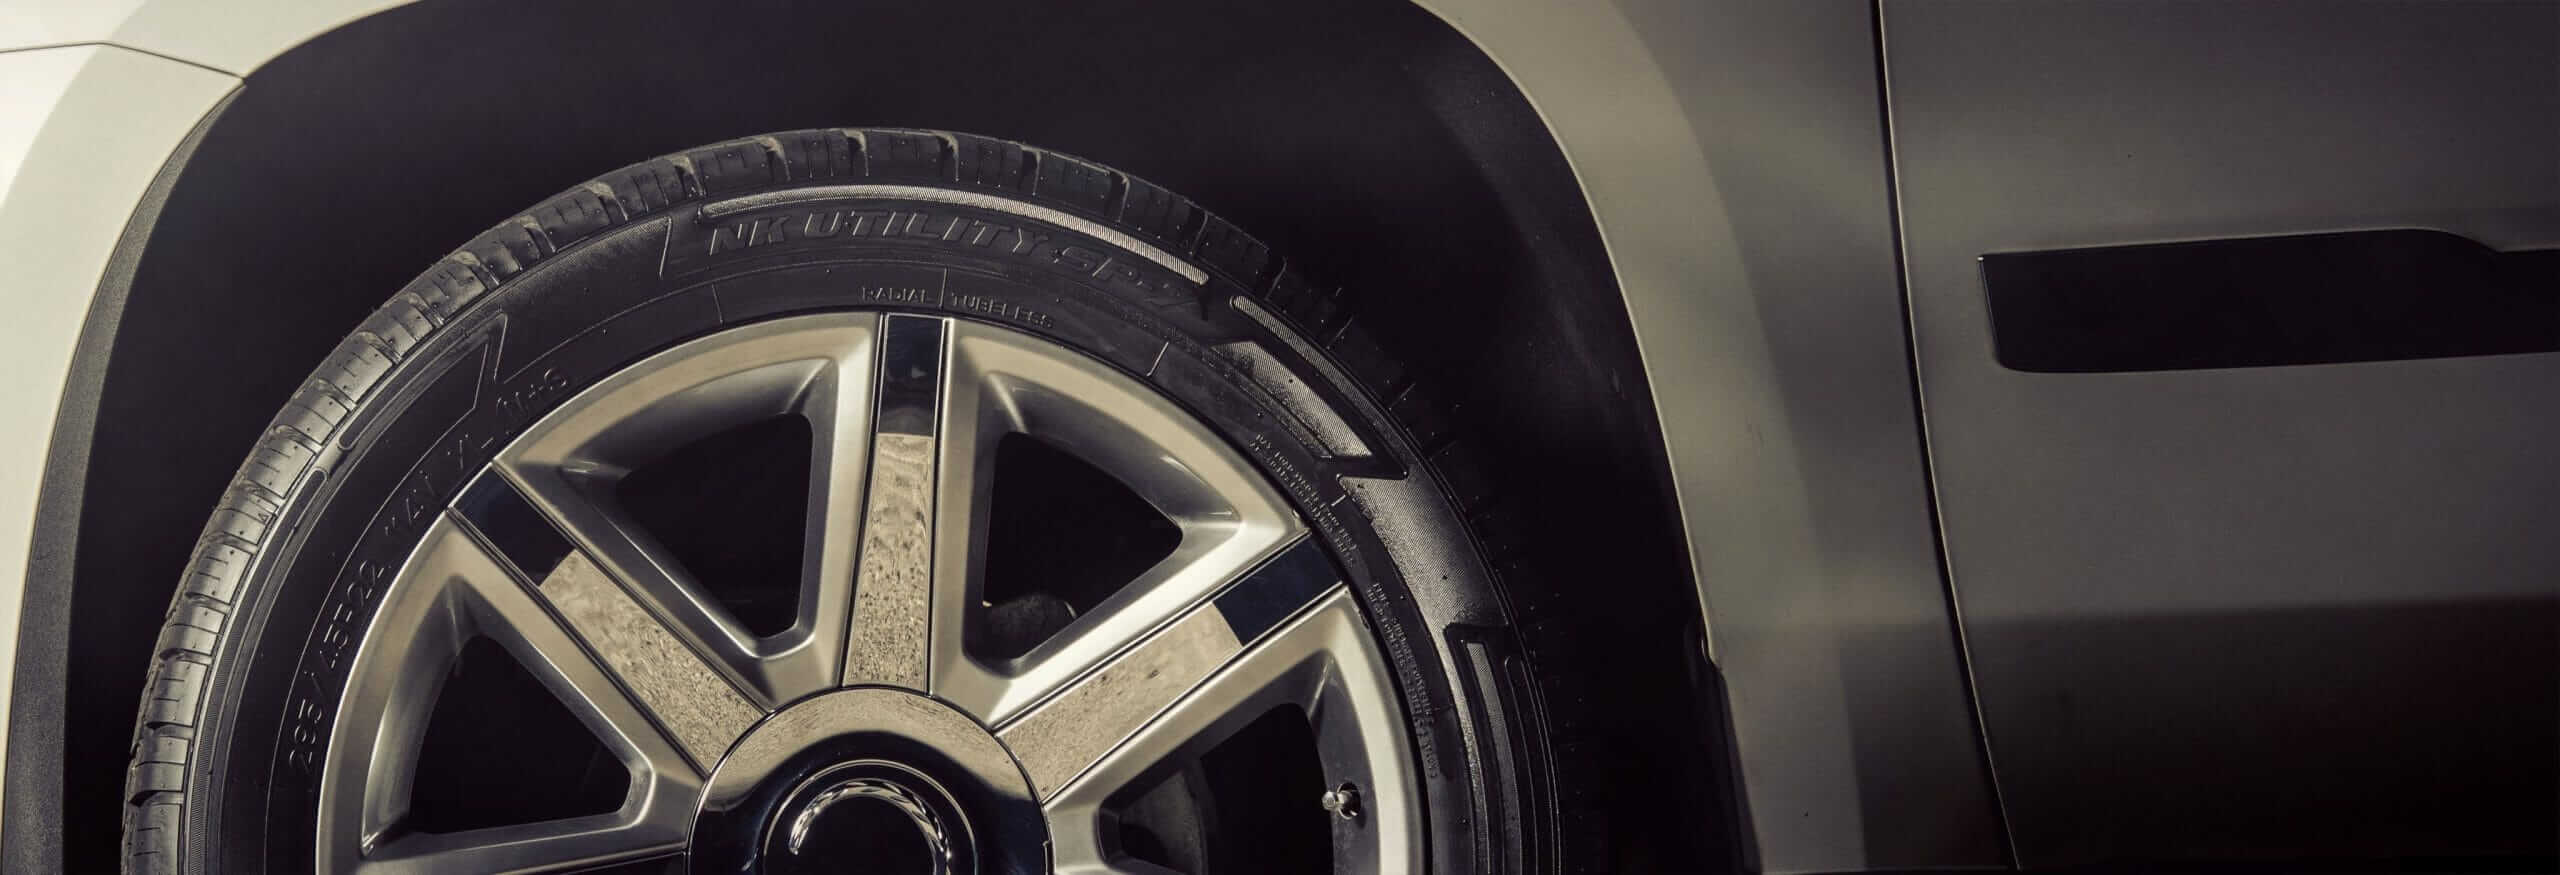 Home Page Tire Slider - SP7_3